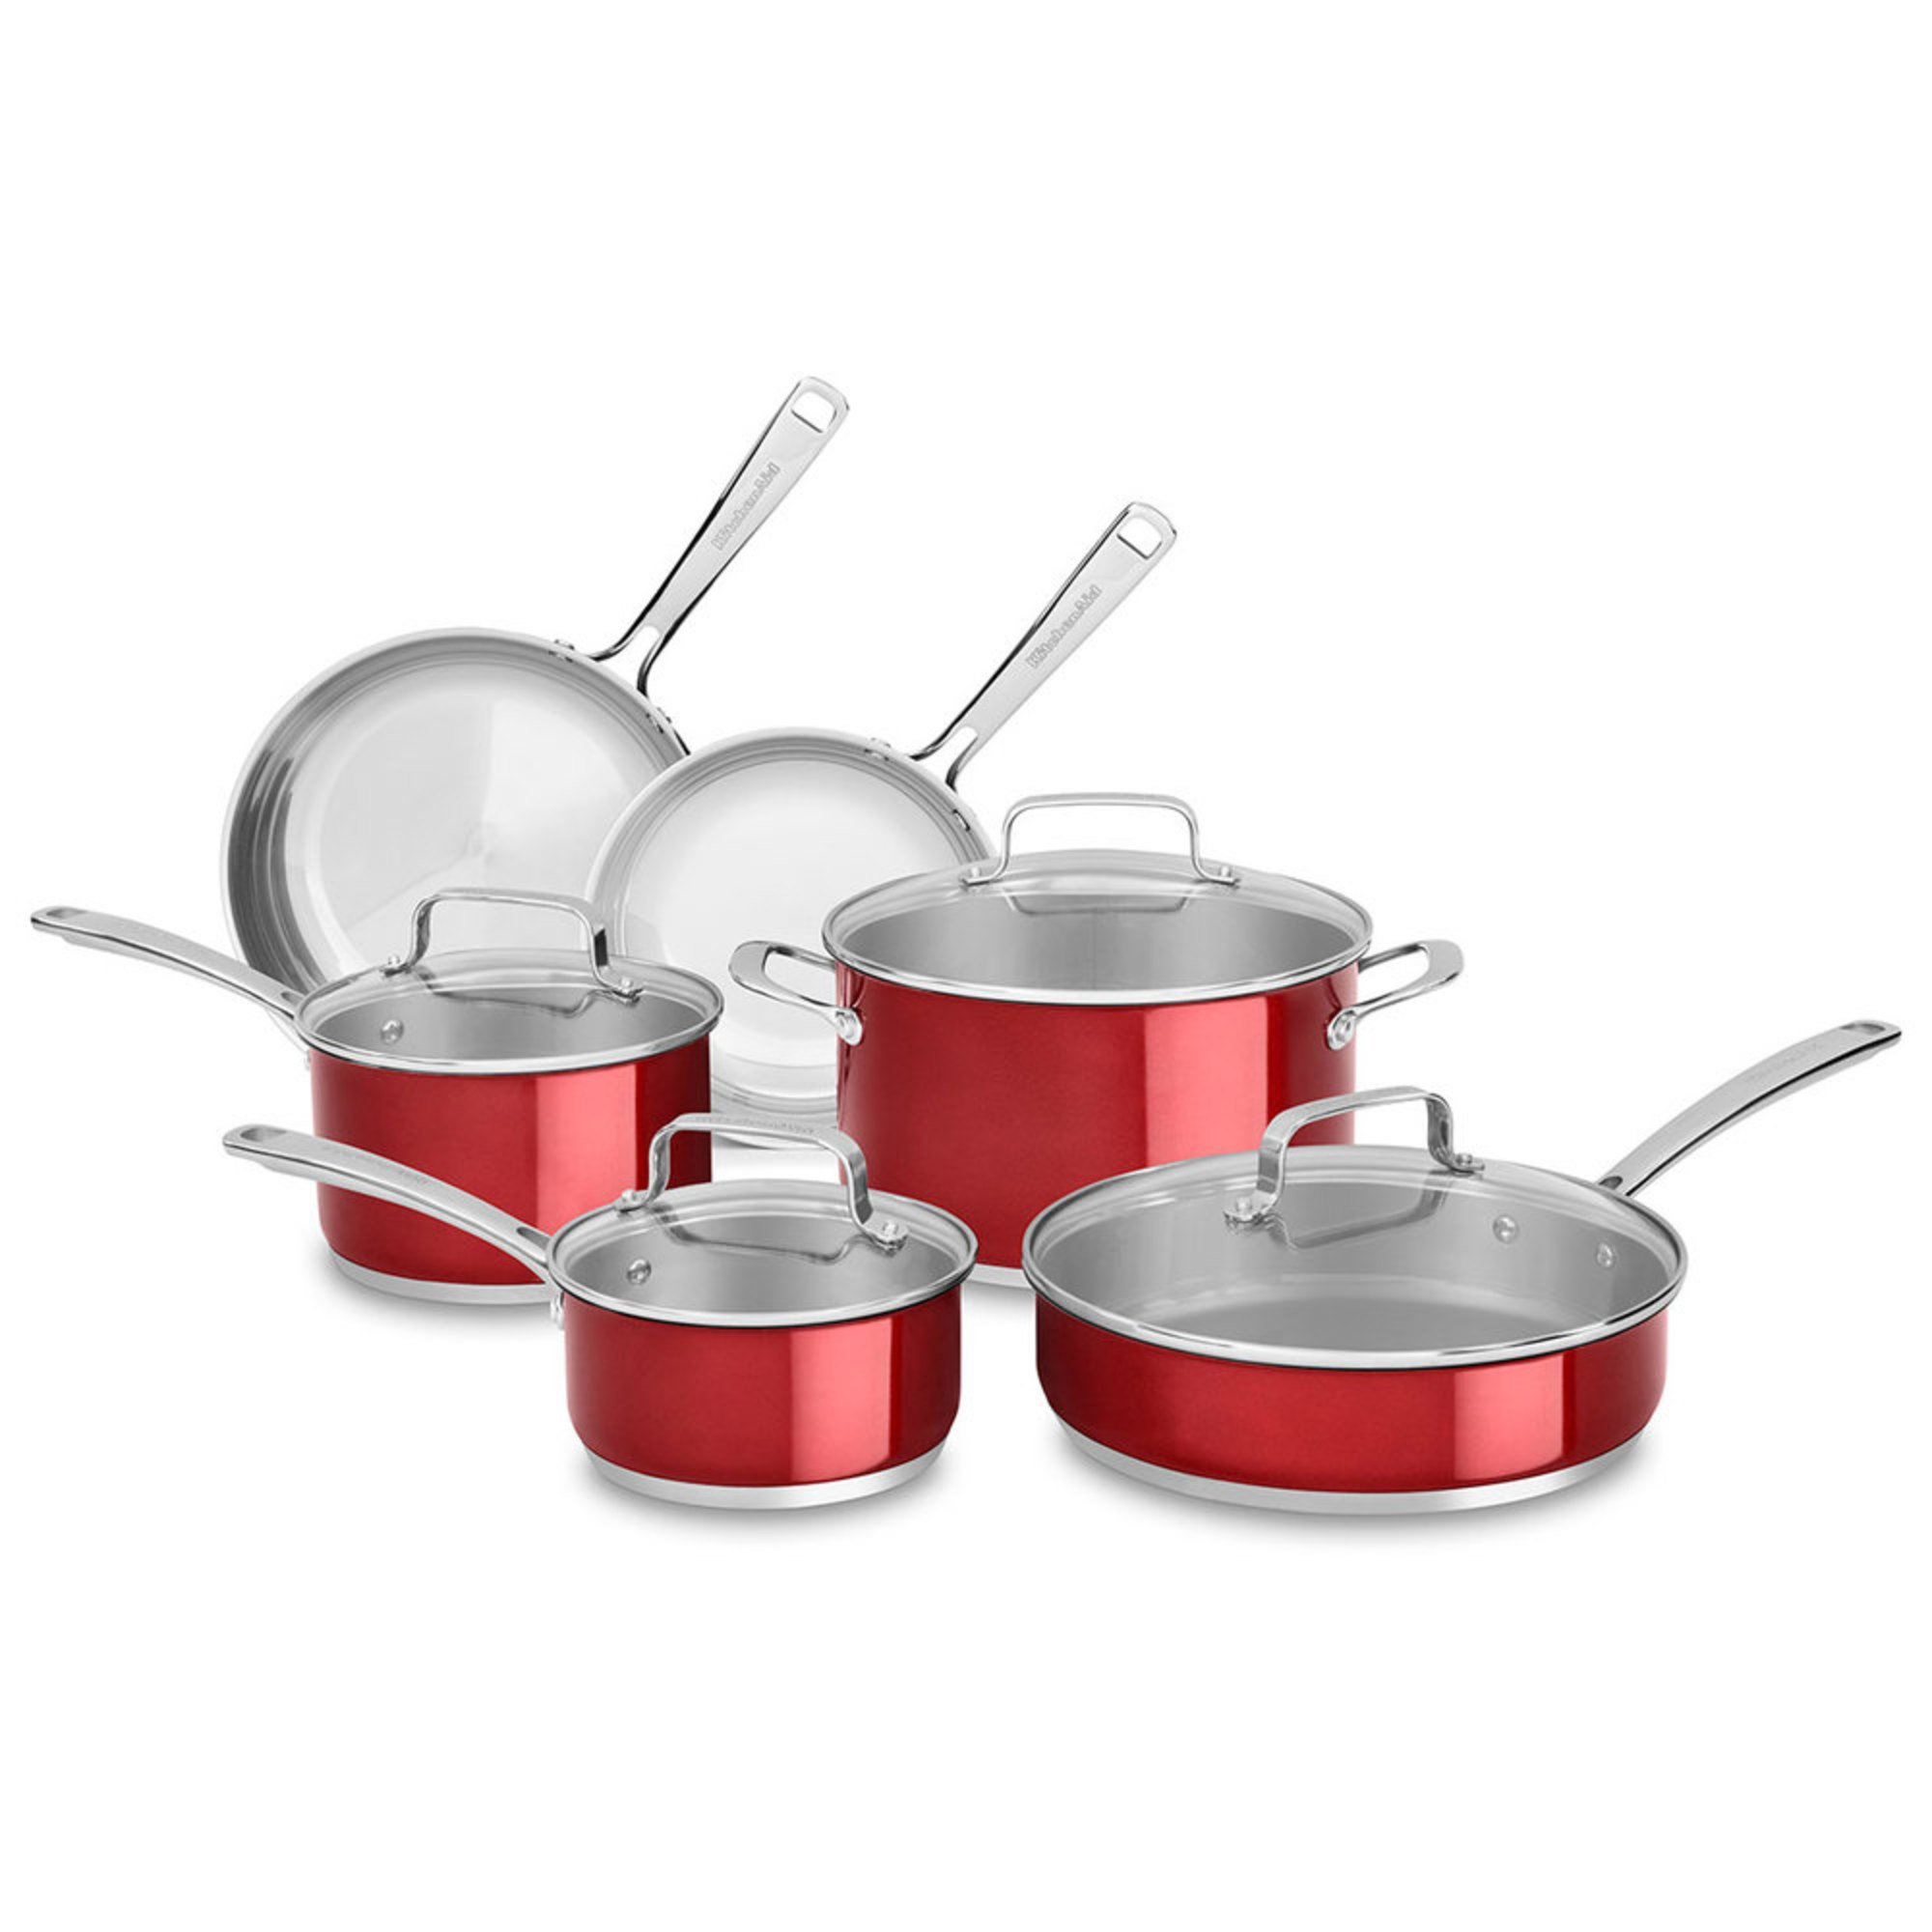 Kitchenaid Stainless 10 Piece Steel Cookware Set Candy Apple Red